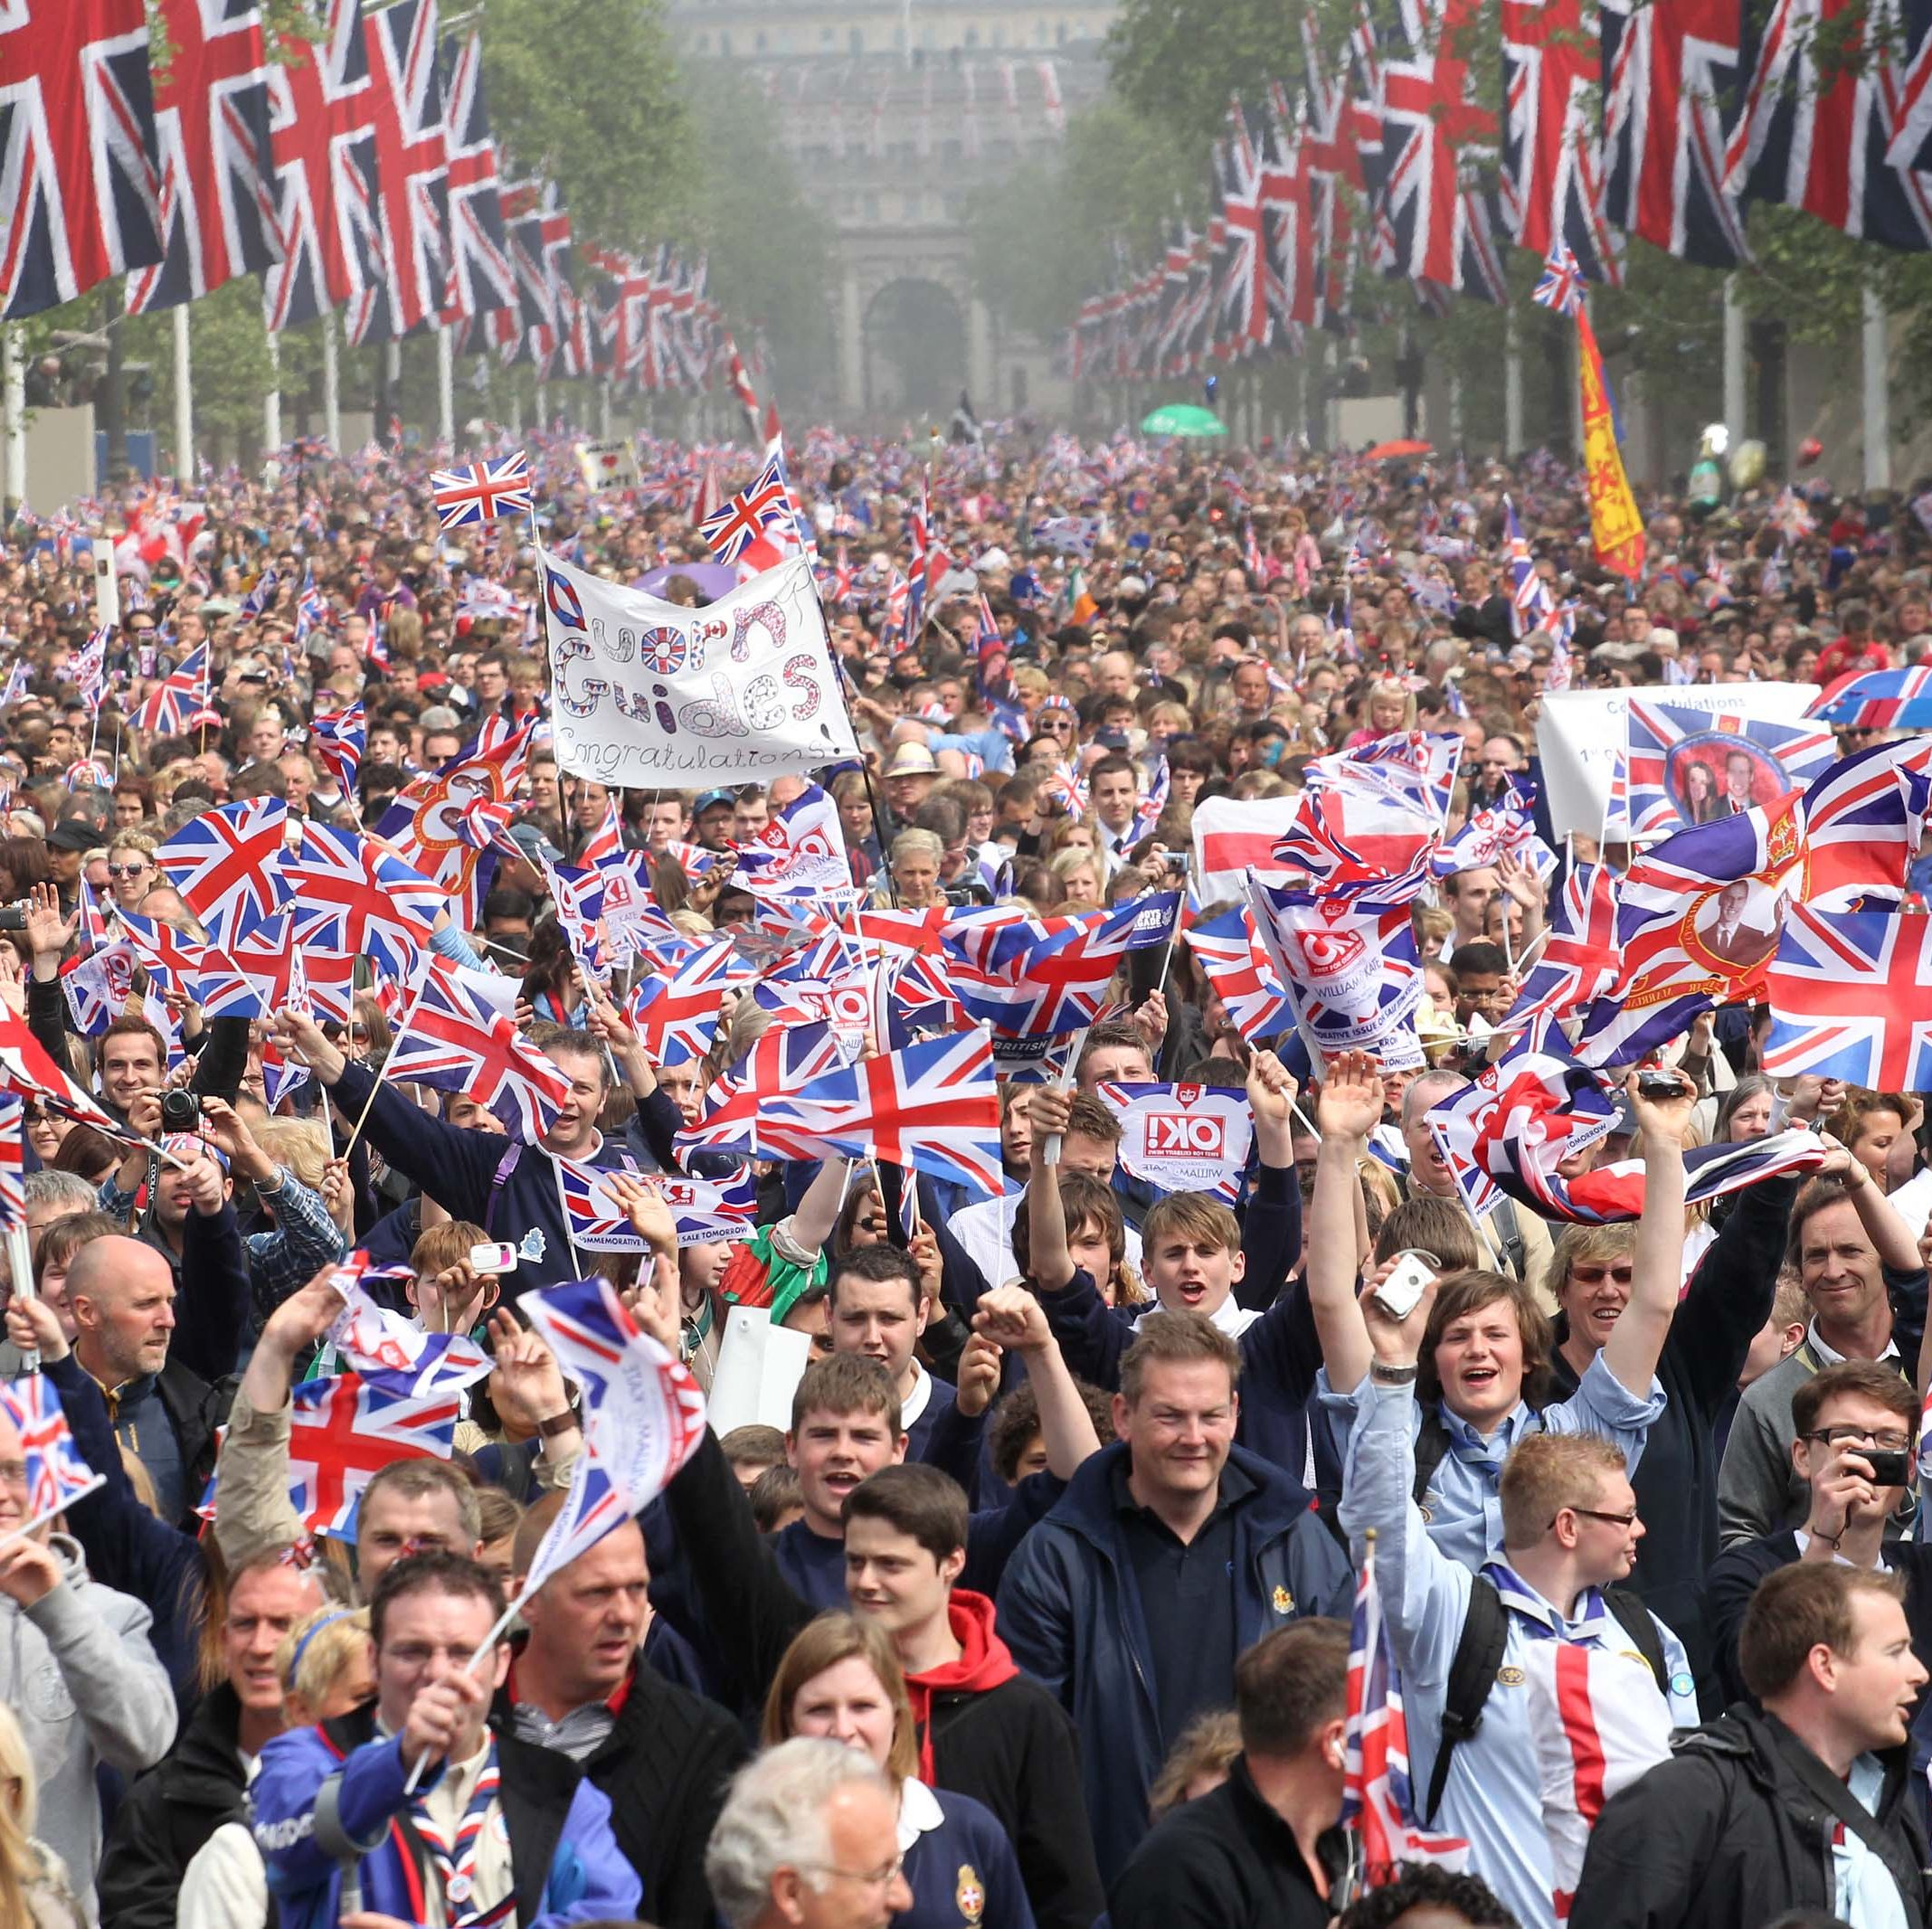 The Wedding of Prince William with Catherine Middleton - Crowd General Views